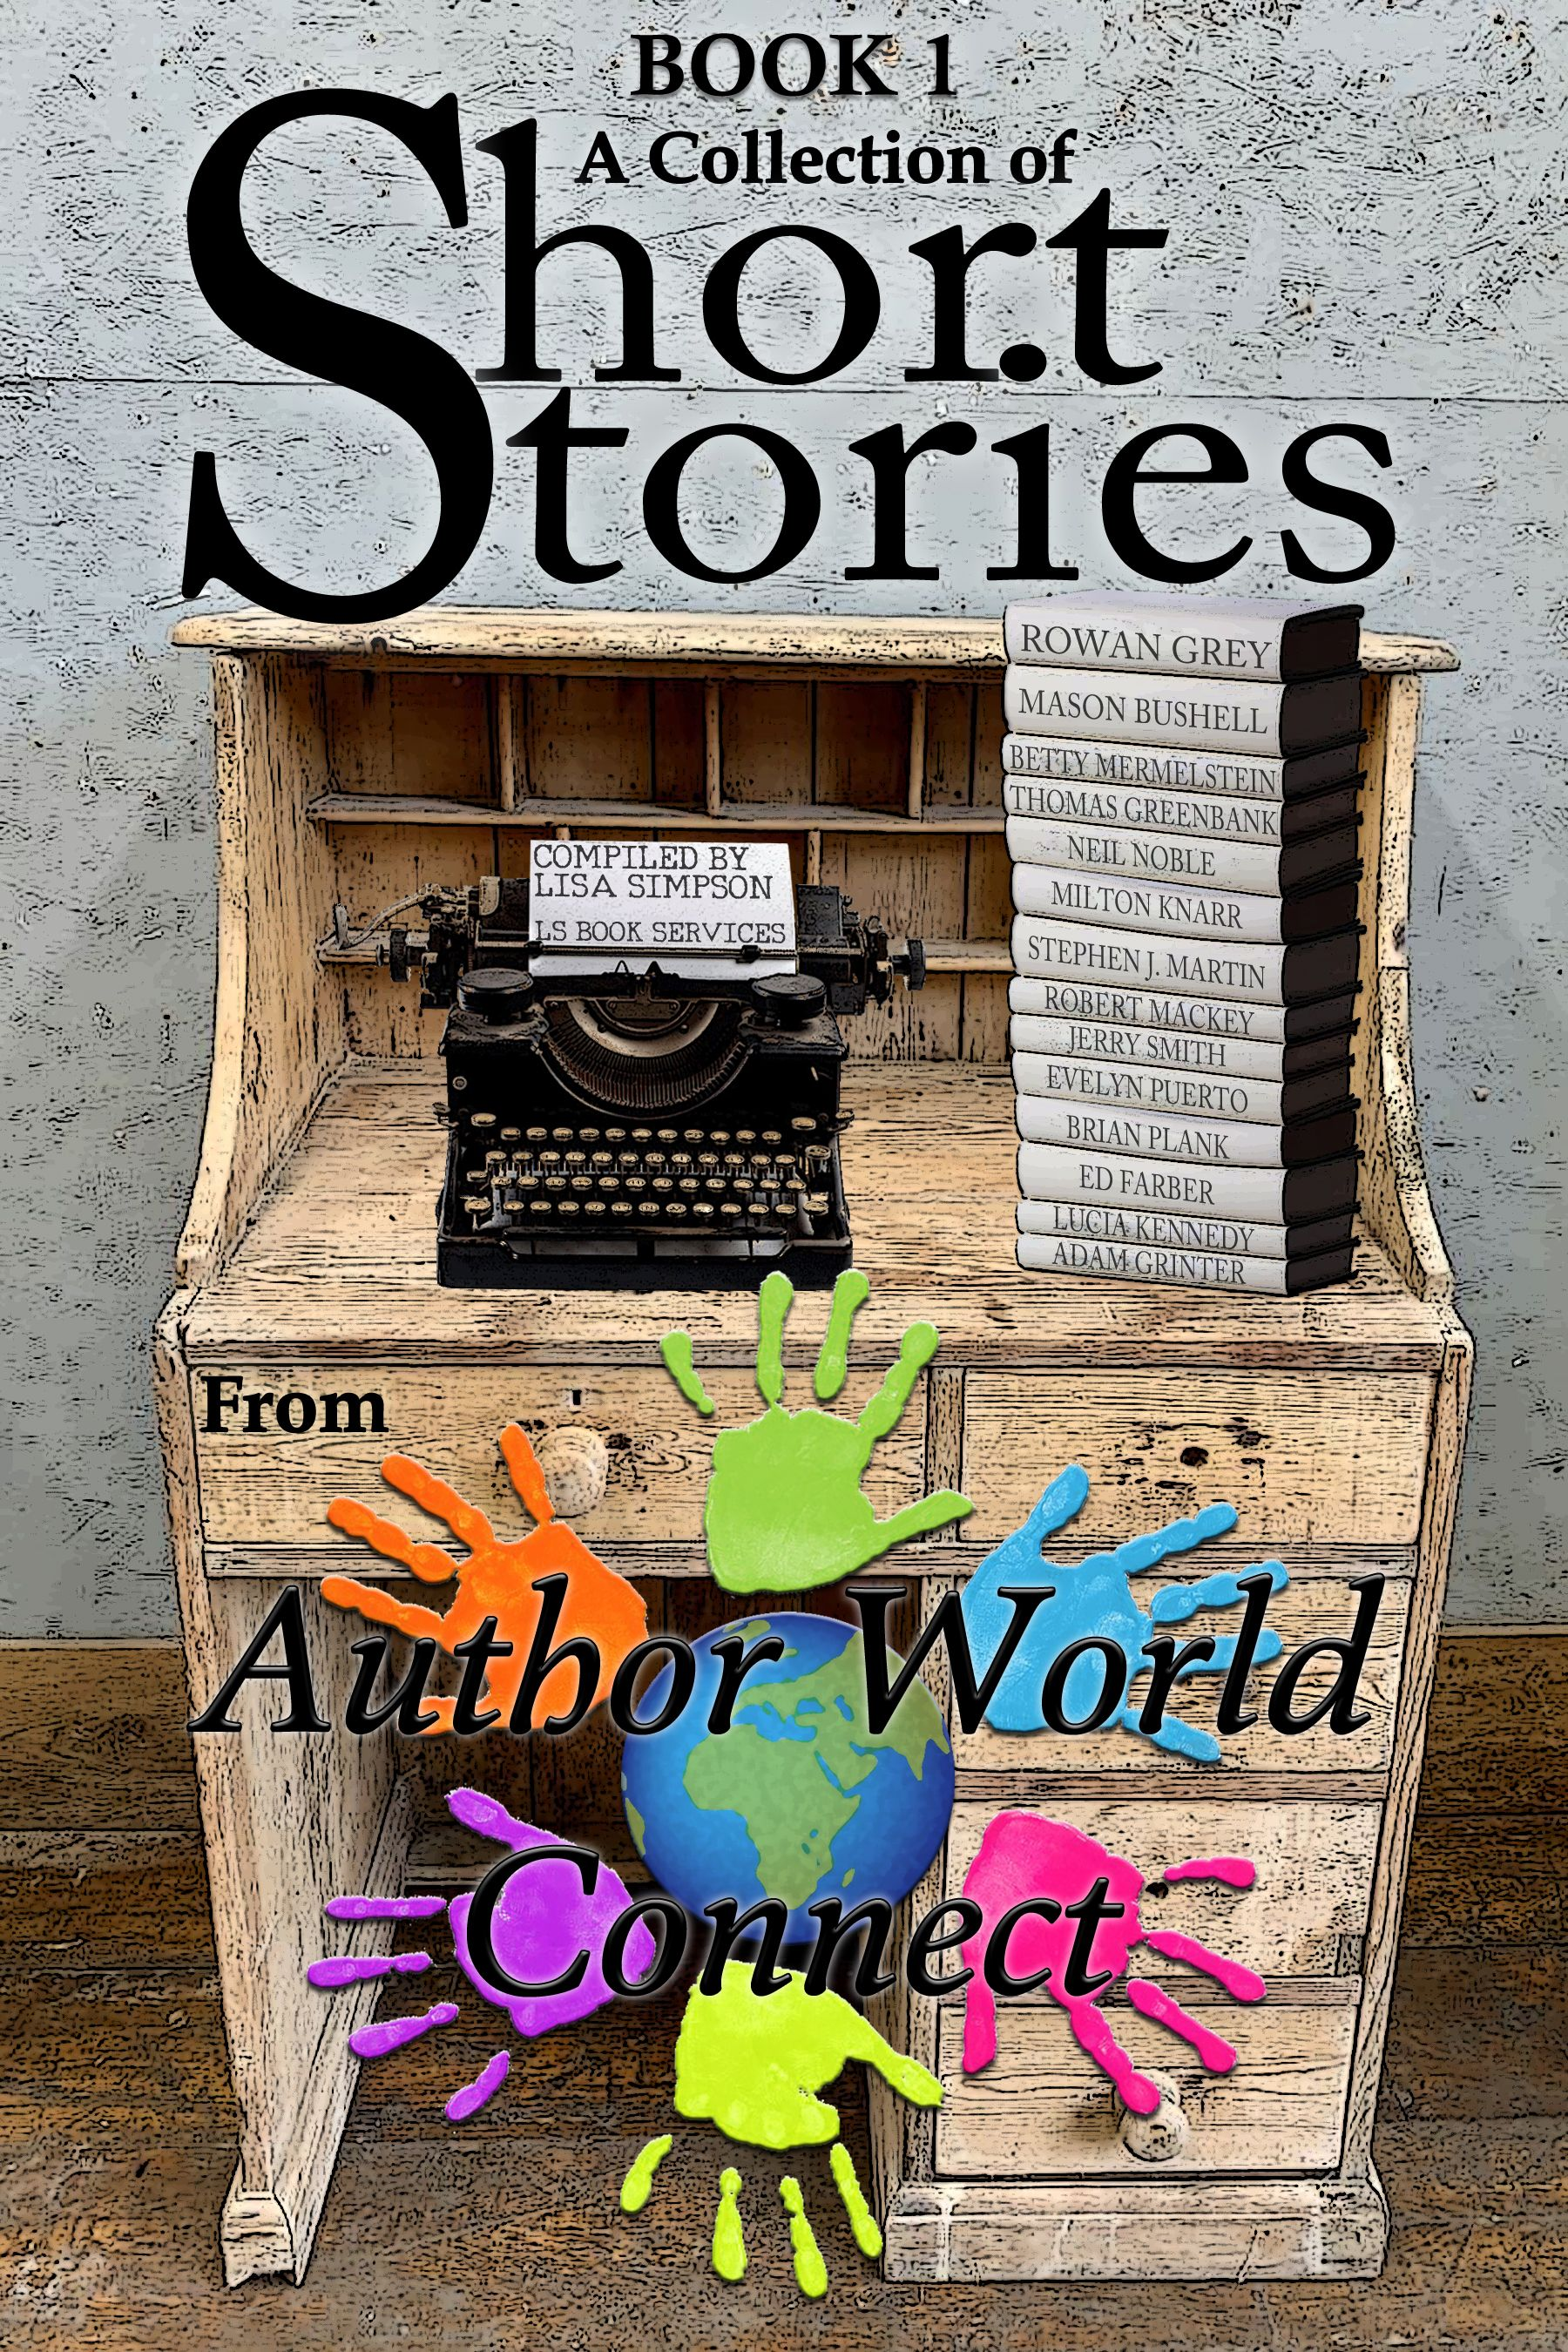 A Collection of Short Stories from AuthorWorld Connect Book 1's Book Image